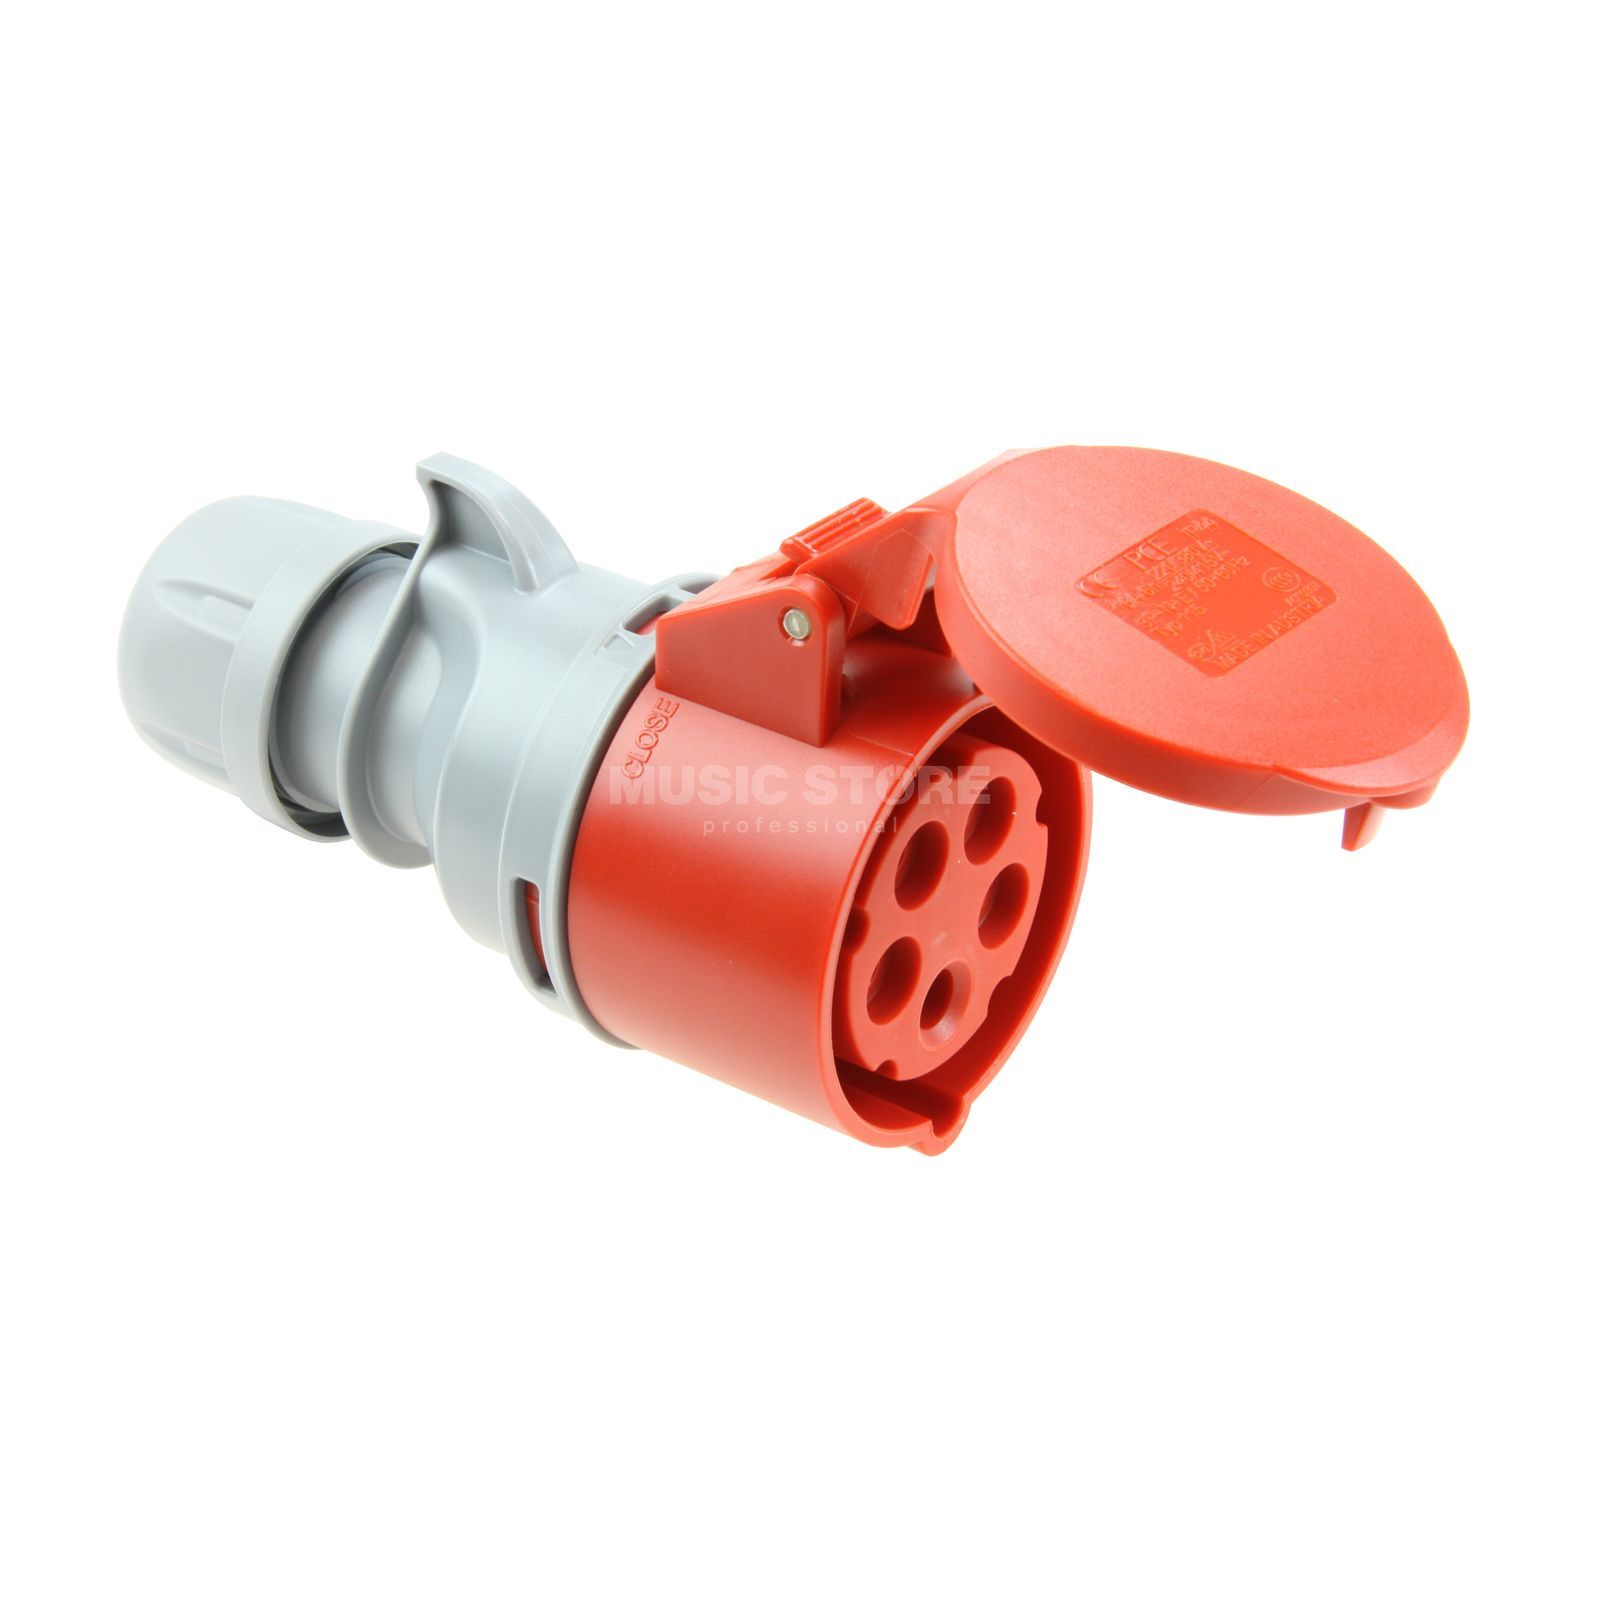 PCE Coupling CEE 16A 5pin Turbo Twist, red Produktbillede